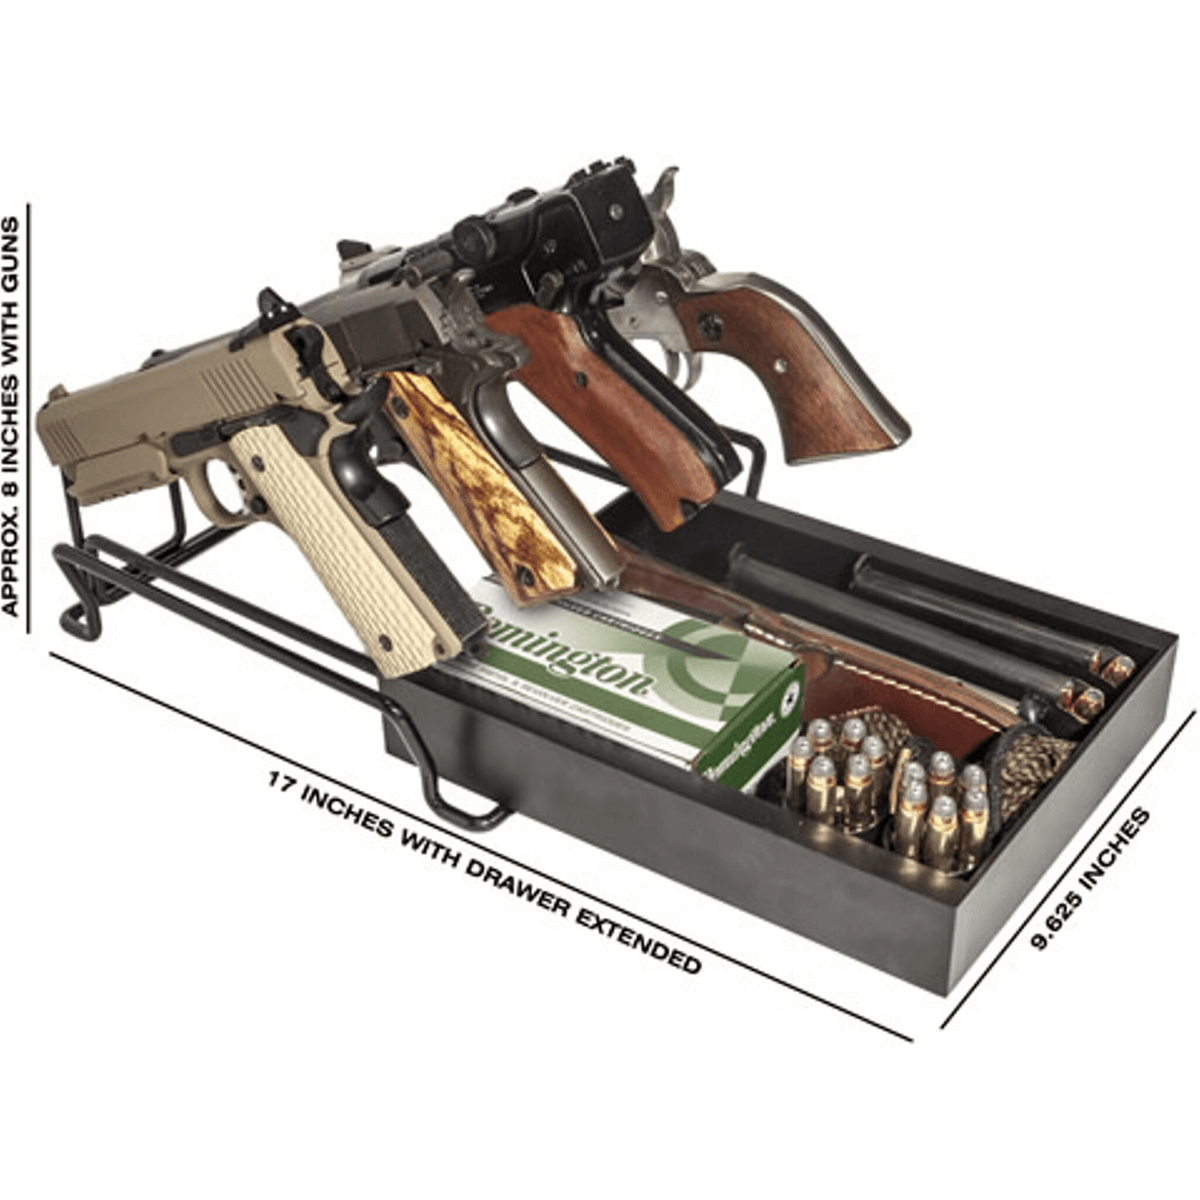 Accessory - Storage - Pistol Rack